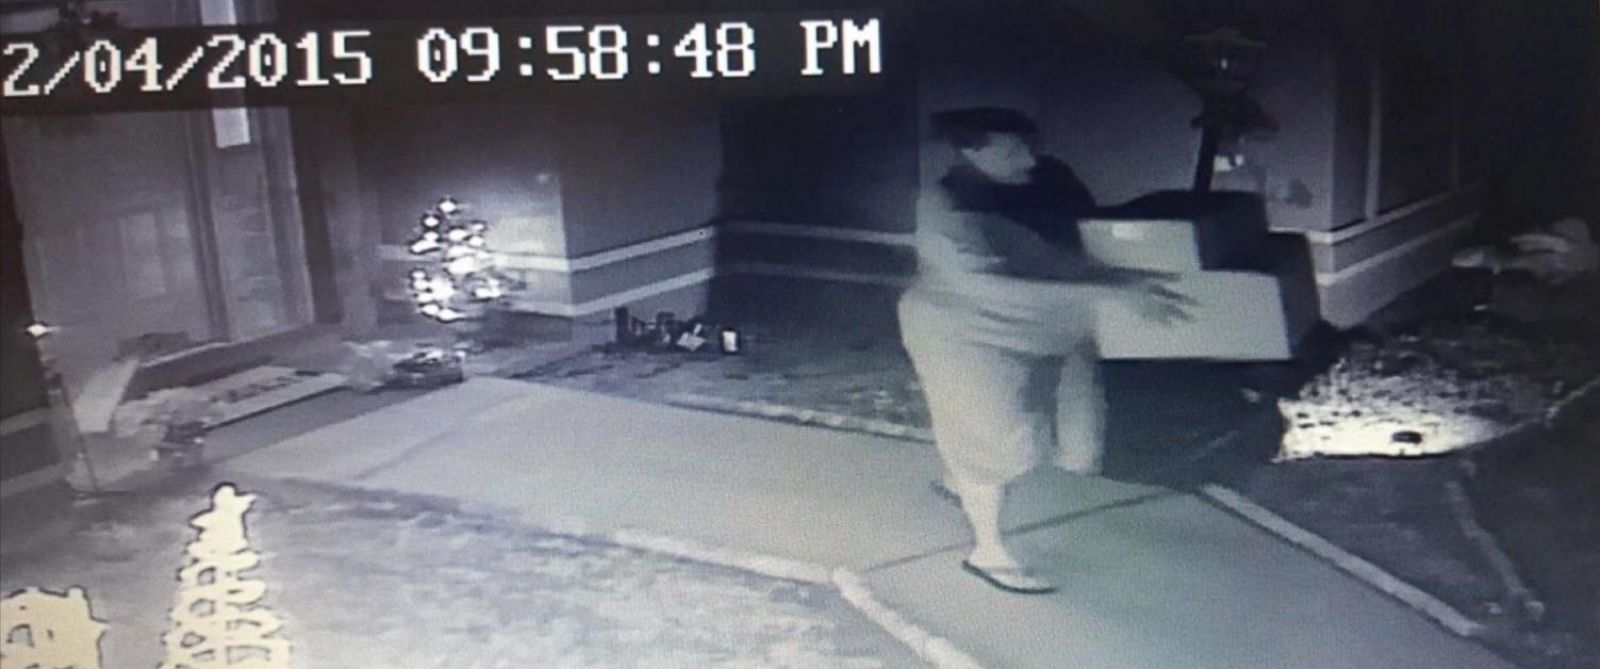 PHOTO:Dana Hager was caught on surveillance video, Dec. 4, 2015, allegedly taking packages from the porch of a neighbors home, according to the Polk County Sheriffs Office.